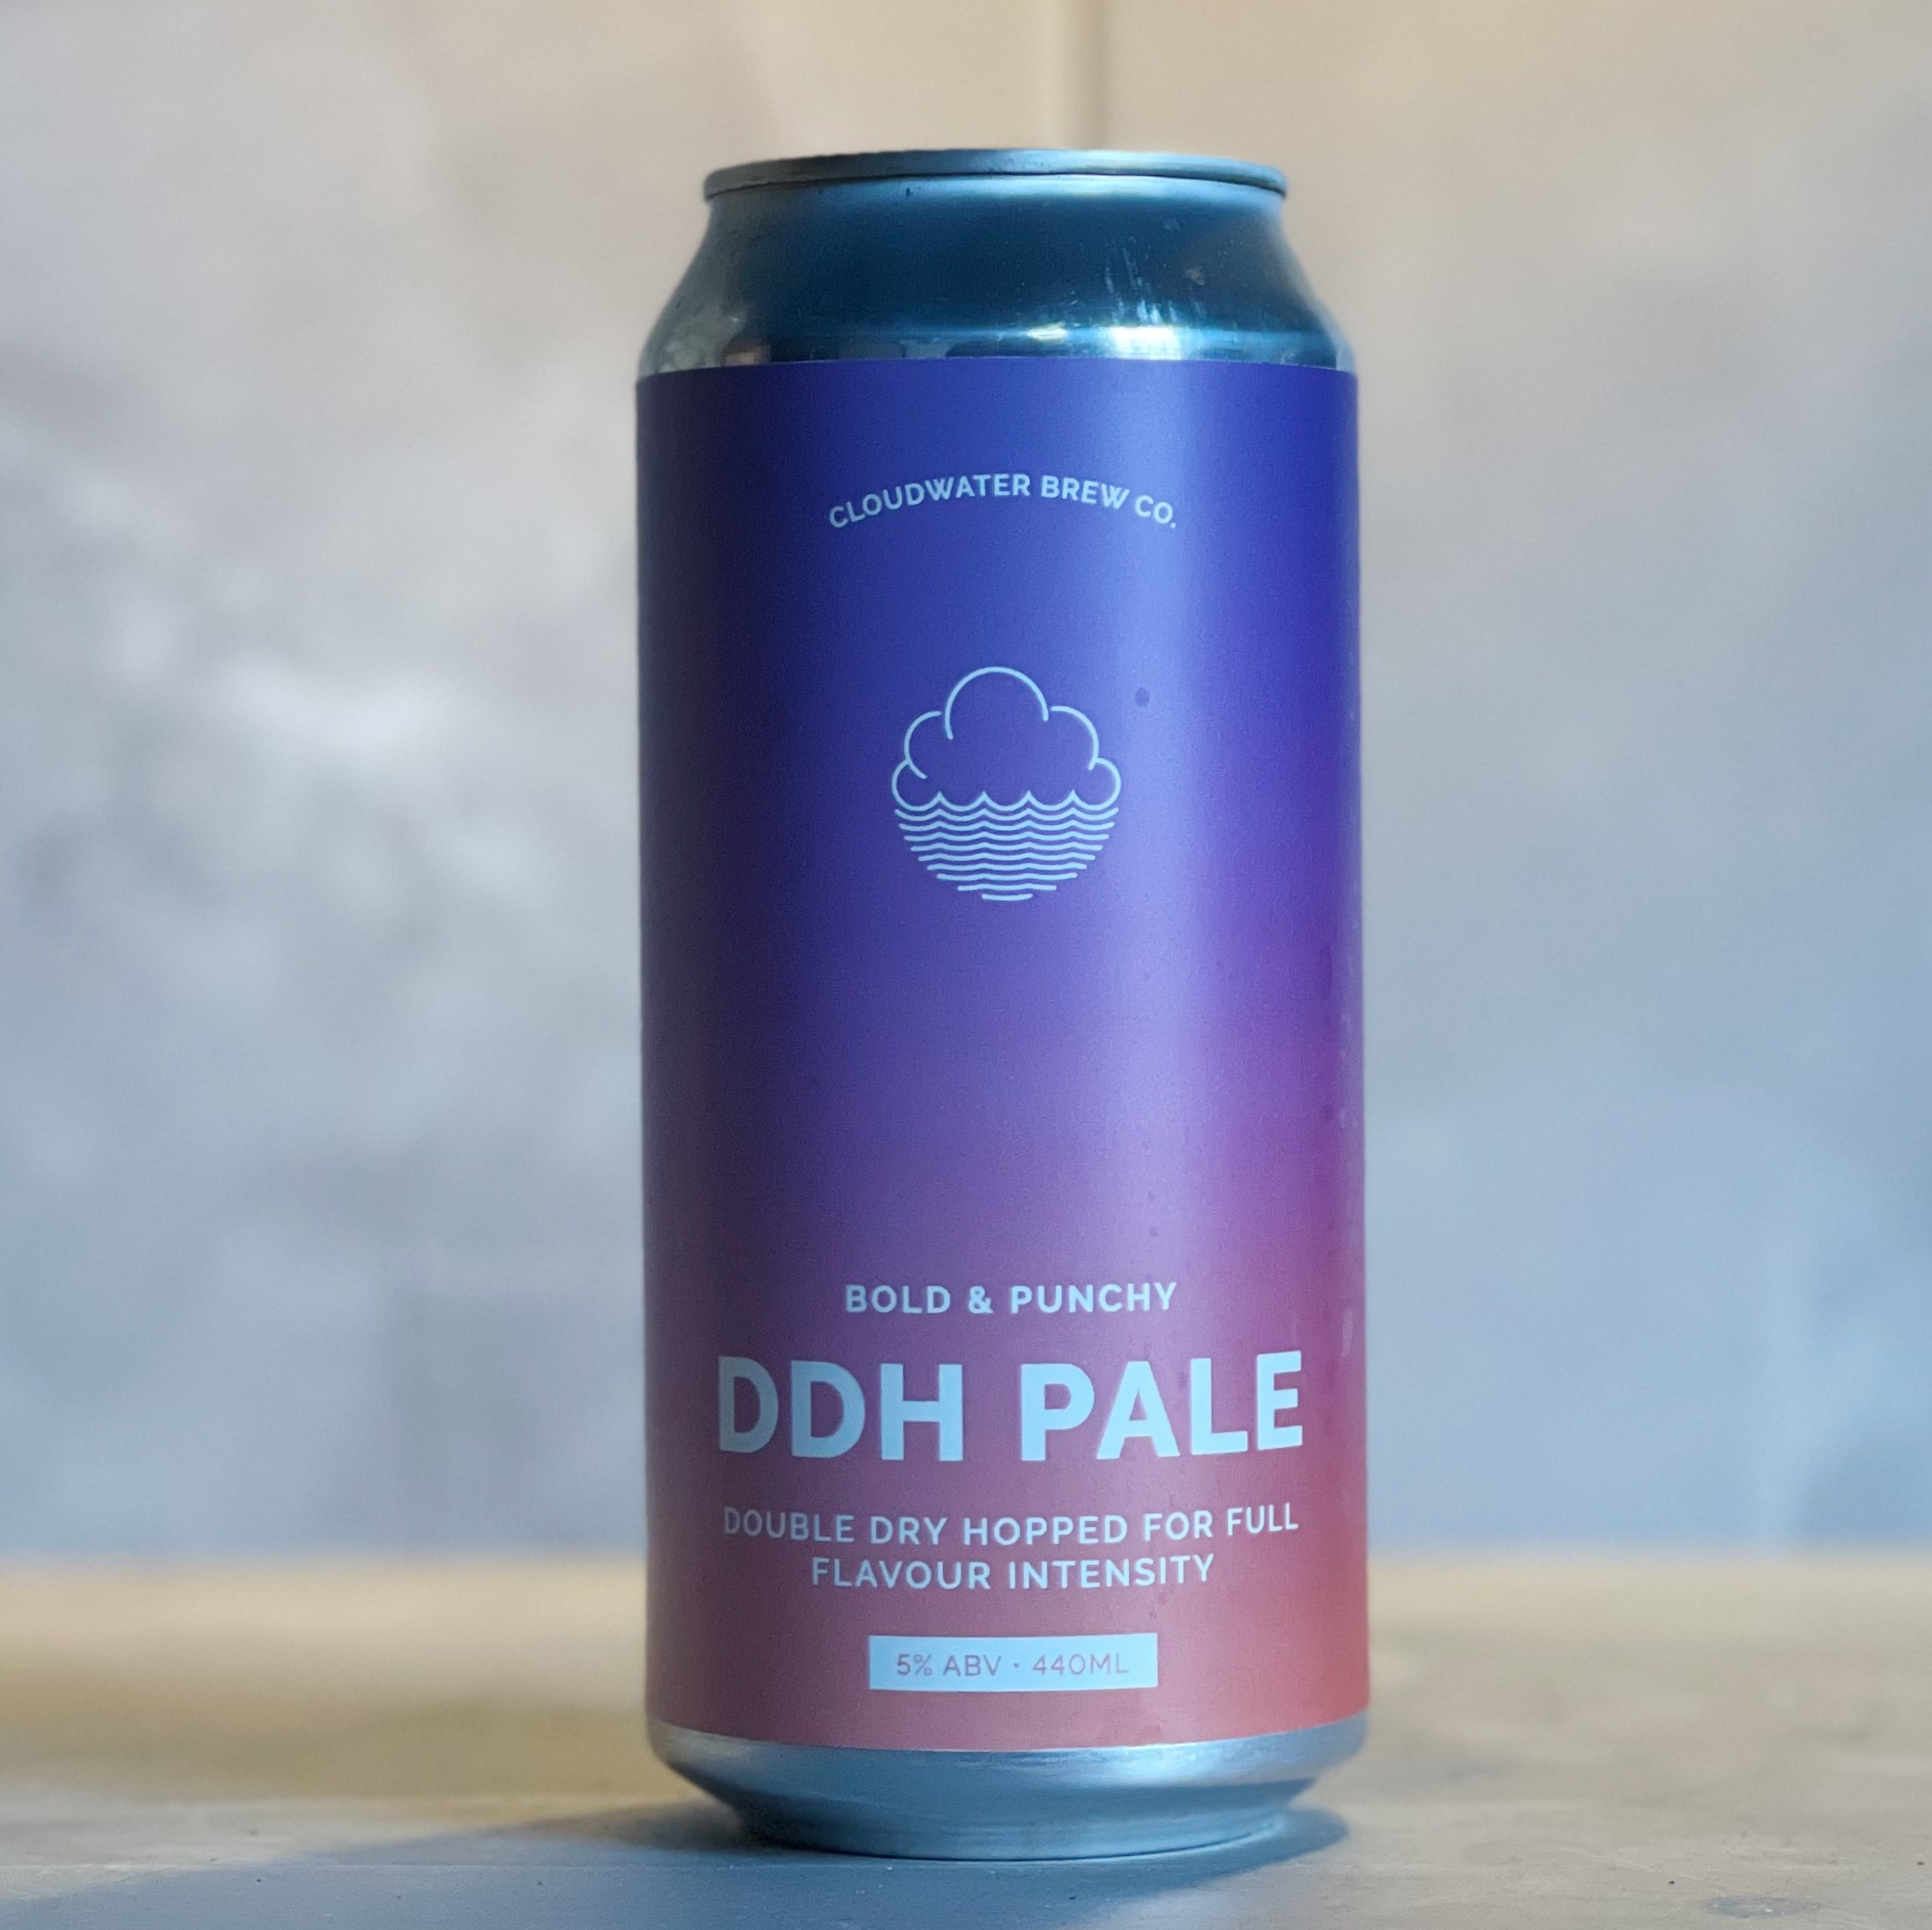 CLOUDWATER | DDH PALE | 5% ABV | 440ML